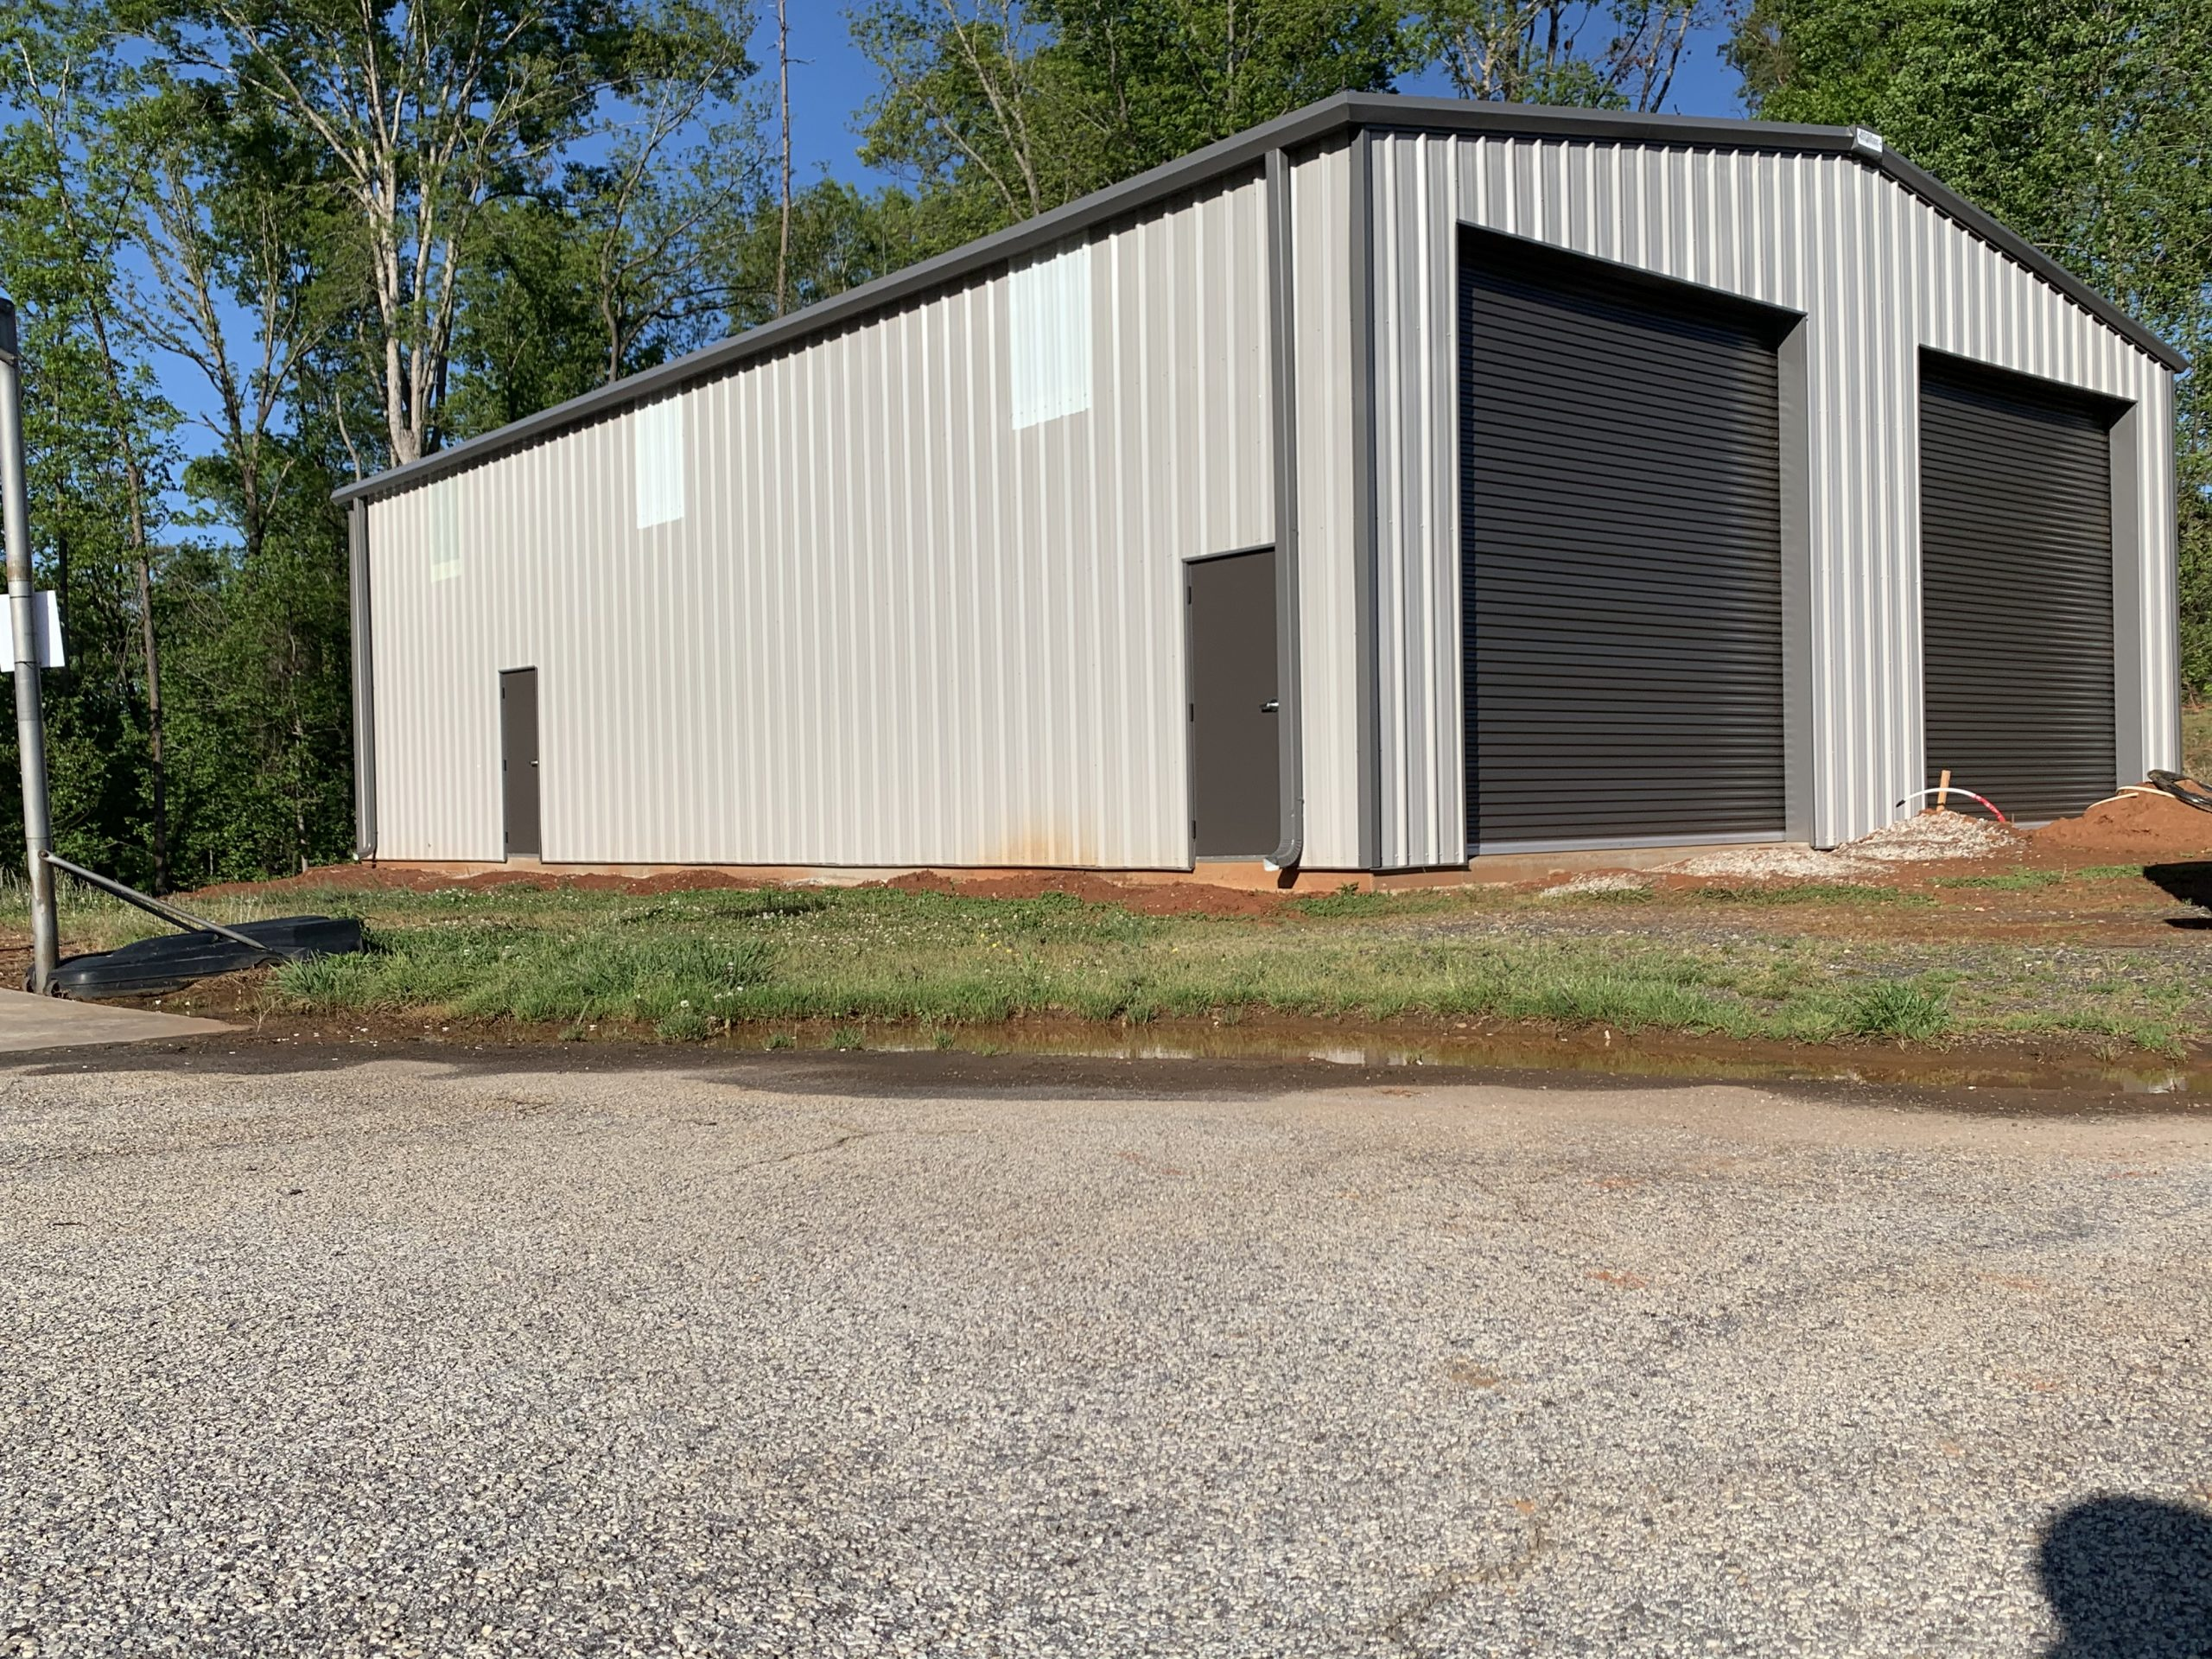 Pre-Engineered Metal Garage Building With Side Entry Doors And Roll Up Garage Doors